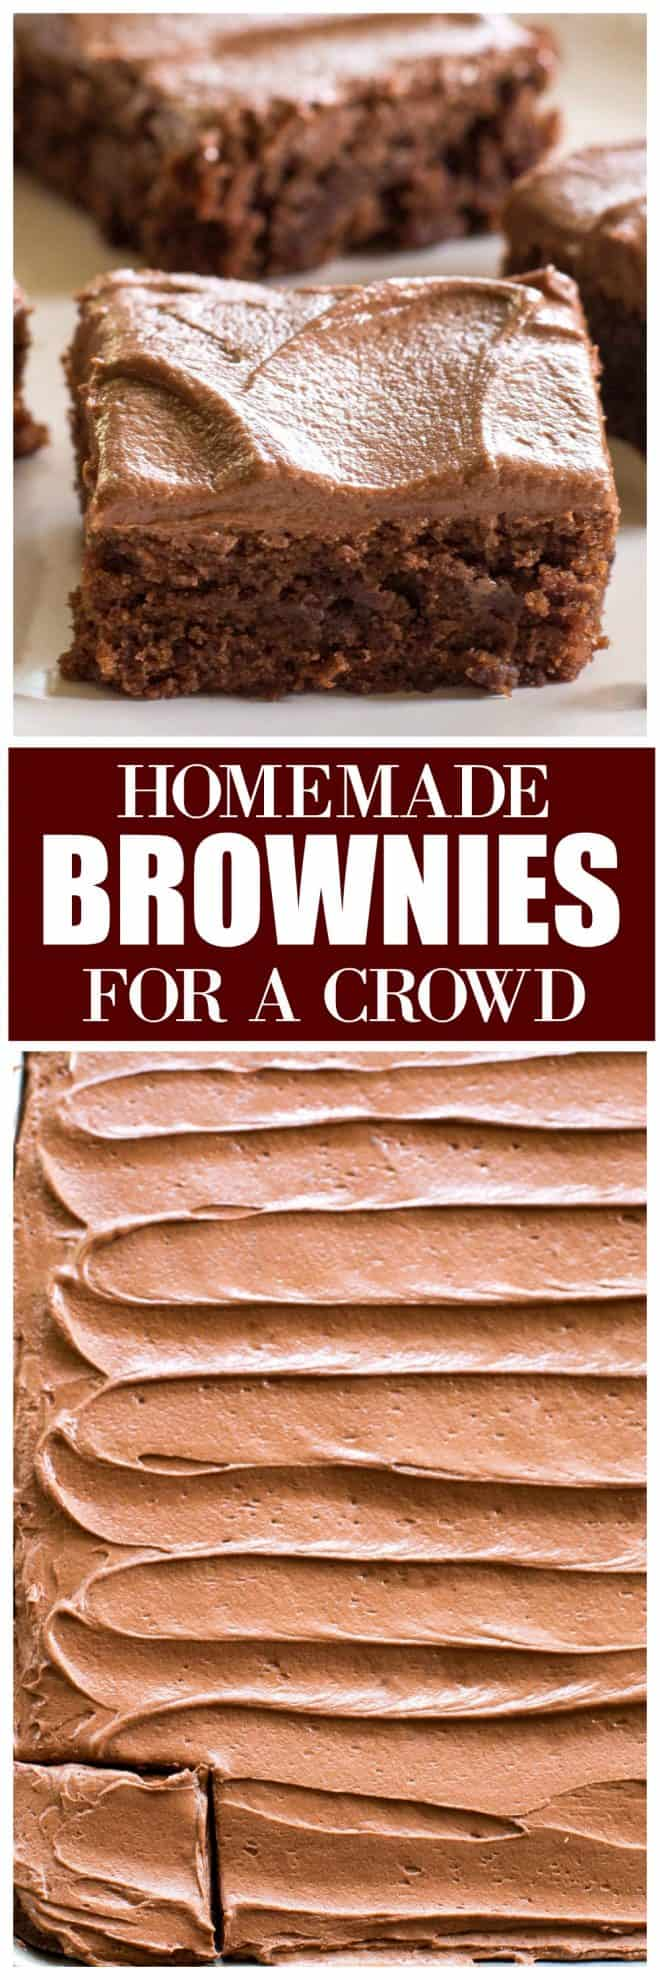 Homemade Brownies For a Crowd